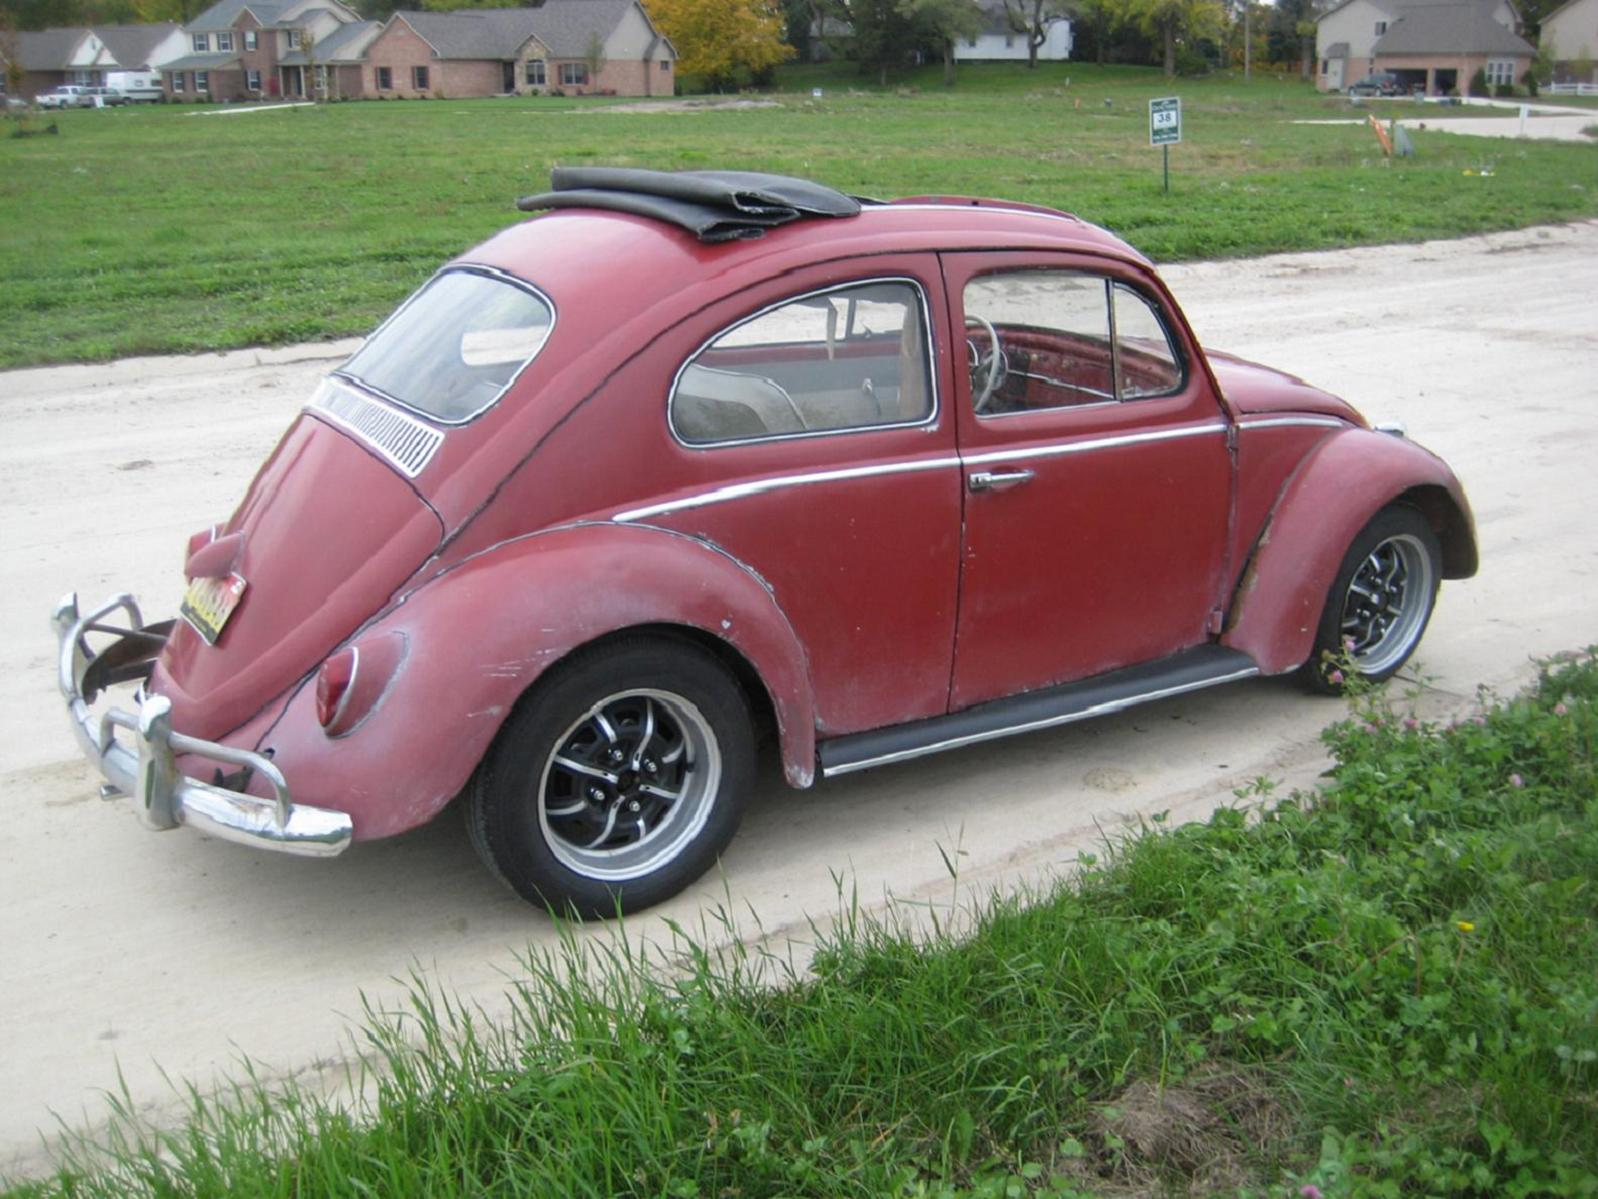 Vw Dictionary Http Wwwthesambacom Archives Info Wiring Bug60jpg 2 Fold Term Used For The Sliding Ragtop Sunroof In A 1956 Through 1967 1963 Us Spec Beetle Because It Forms Folds When Open